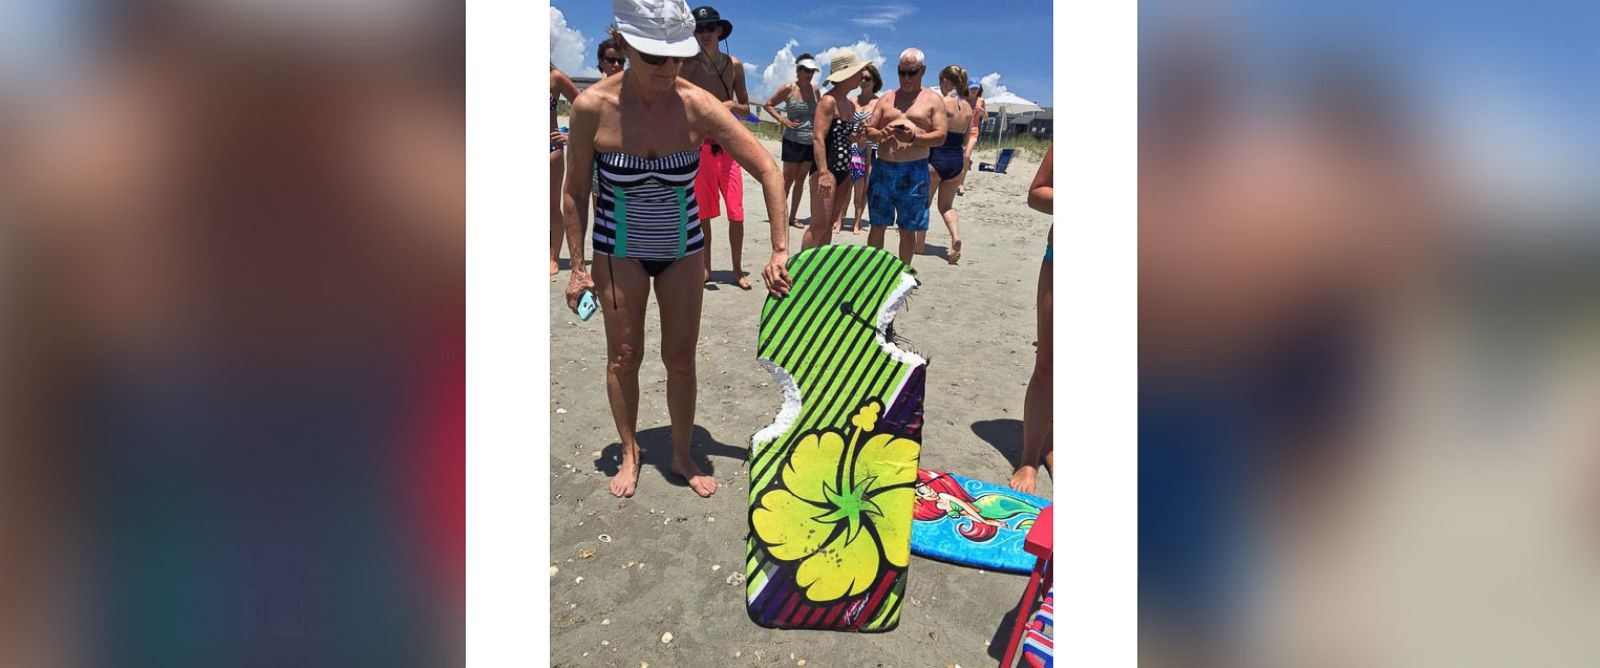 PHOTO: A girl was injured after reported shark attack in North Carolina.